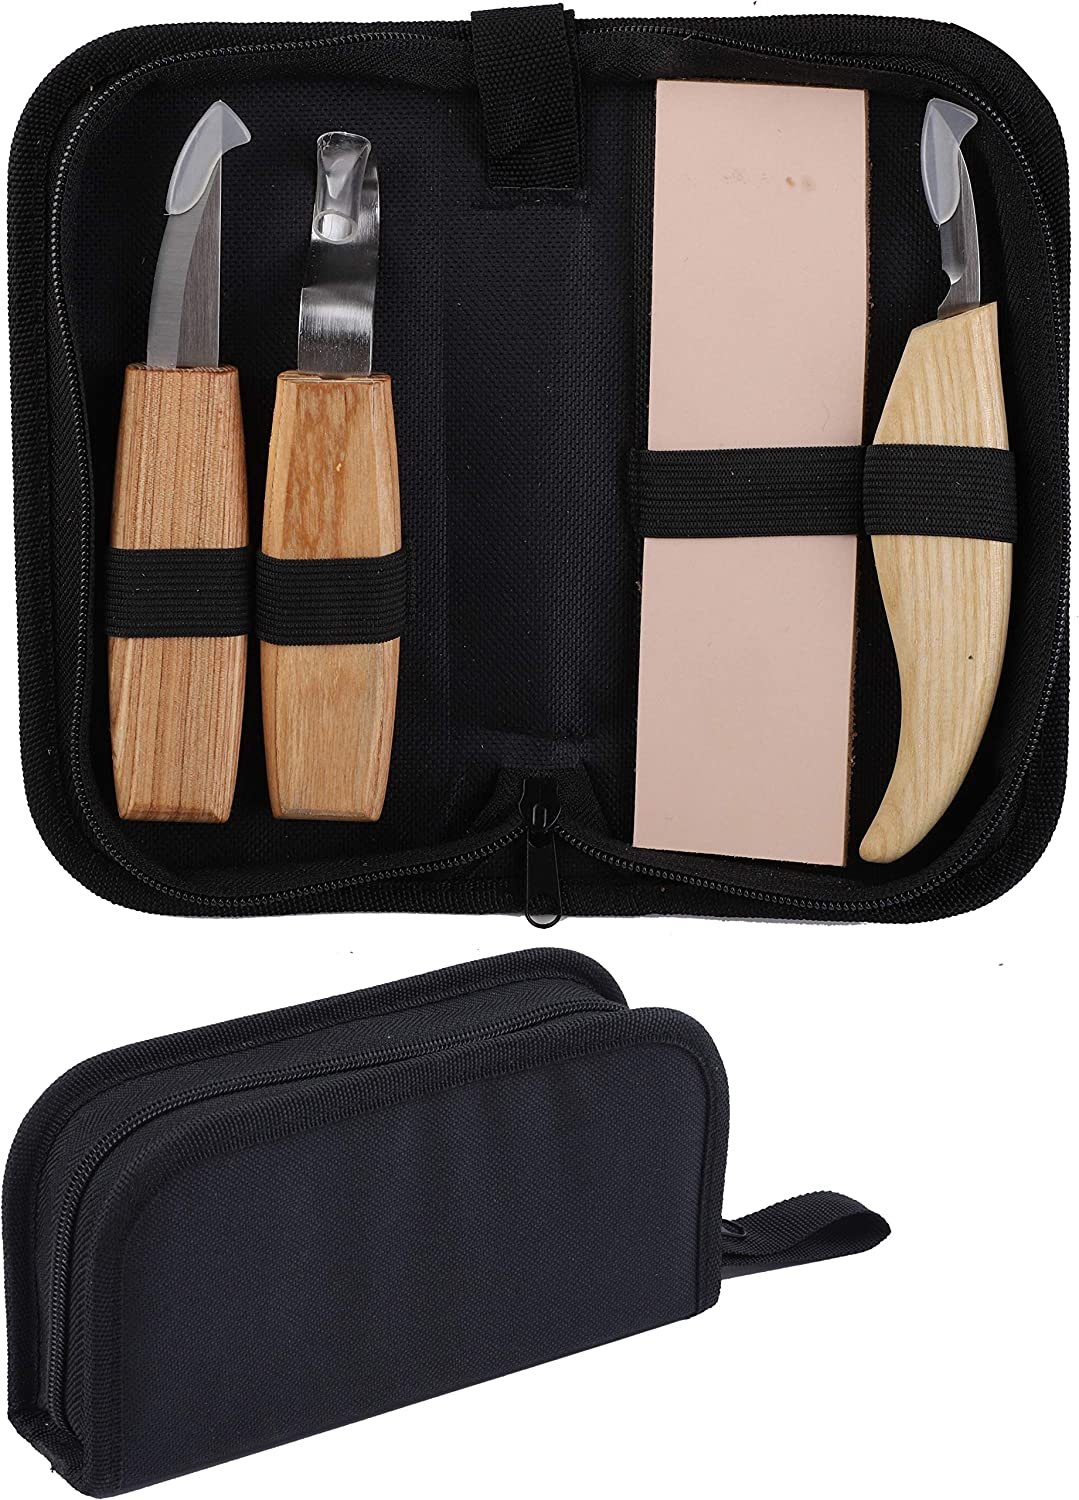 Ruisita Wood Carving Tools Set 4 in 1 Beginners Kit Carving Hook Tools Wood Whittling Tools Chip Carving Tools with Storage Bag for Spoon Bowl Cup Woodworking